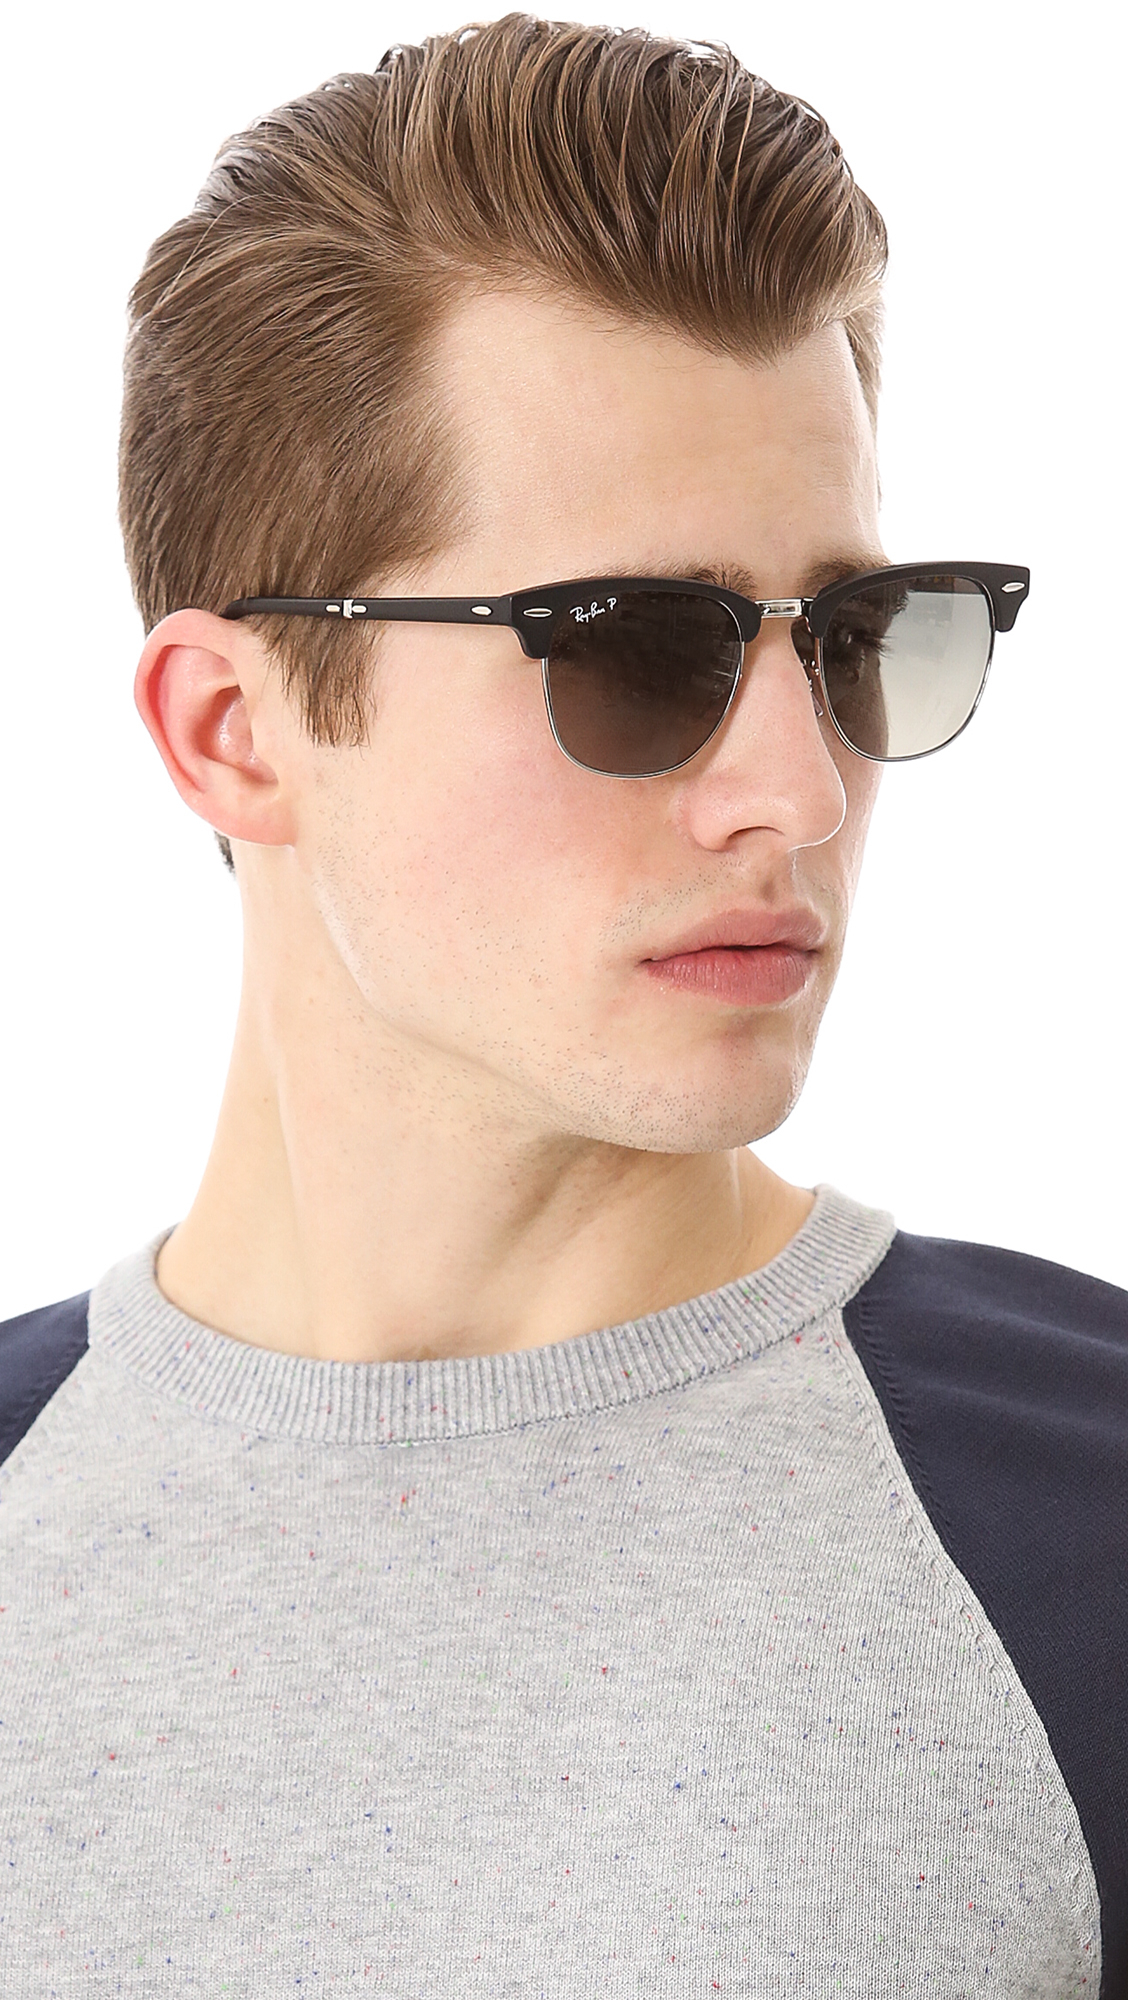 aaa110b089 ... coupon code for gallery. previously sold at east dane mens ray ban  clubmaster 51a99 30f73